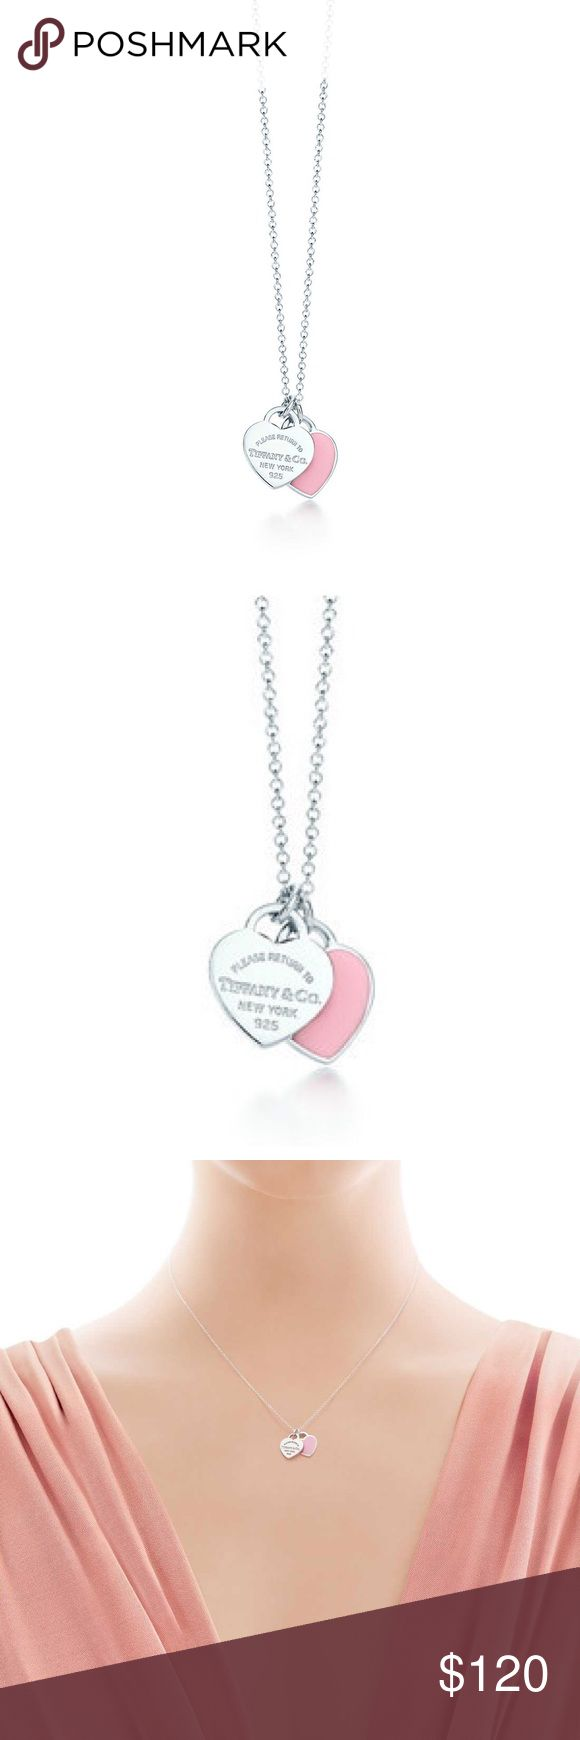 Tiffany Double Heart Necklace Tiffany necklace with a silver and a pink heart. Clasp closure. Will polish with silver cleaner before sending Tiffany & Co. Jewelry Necklaces